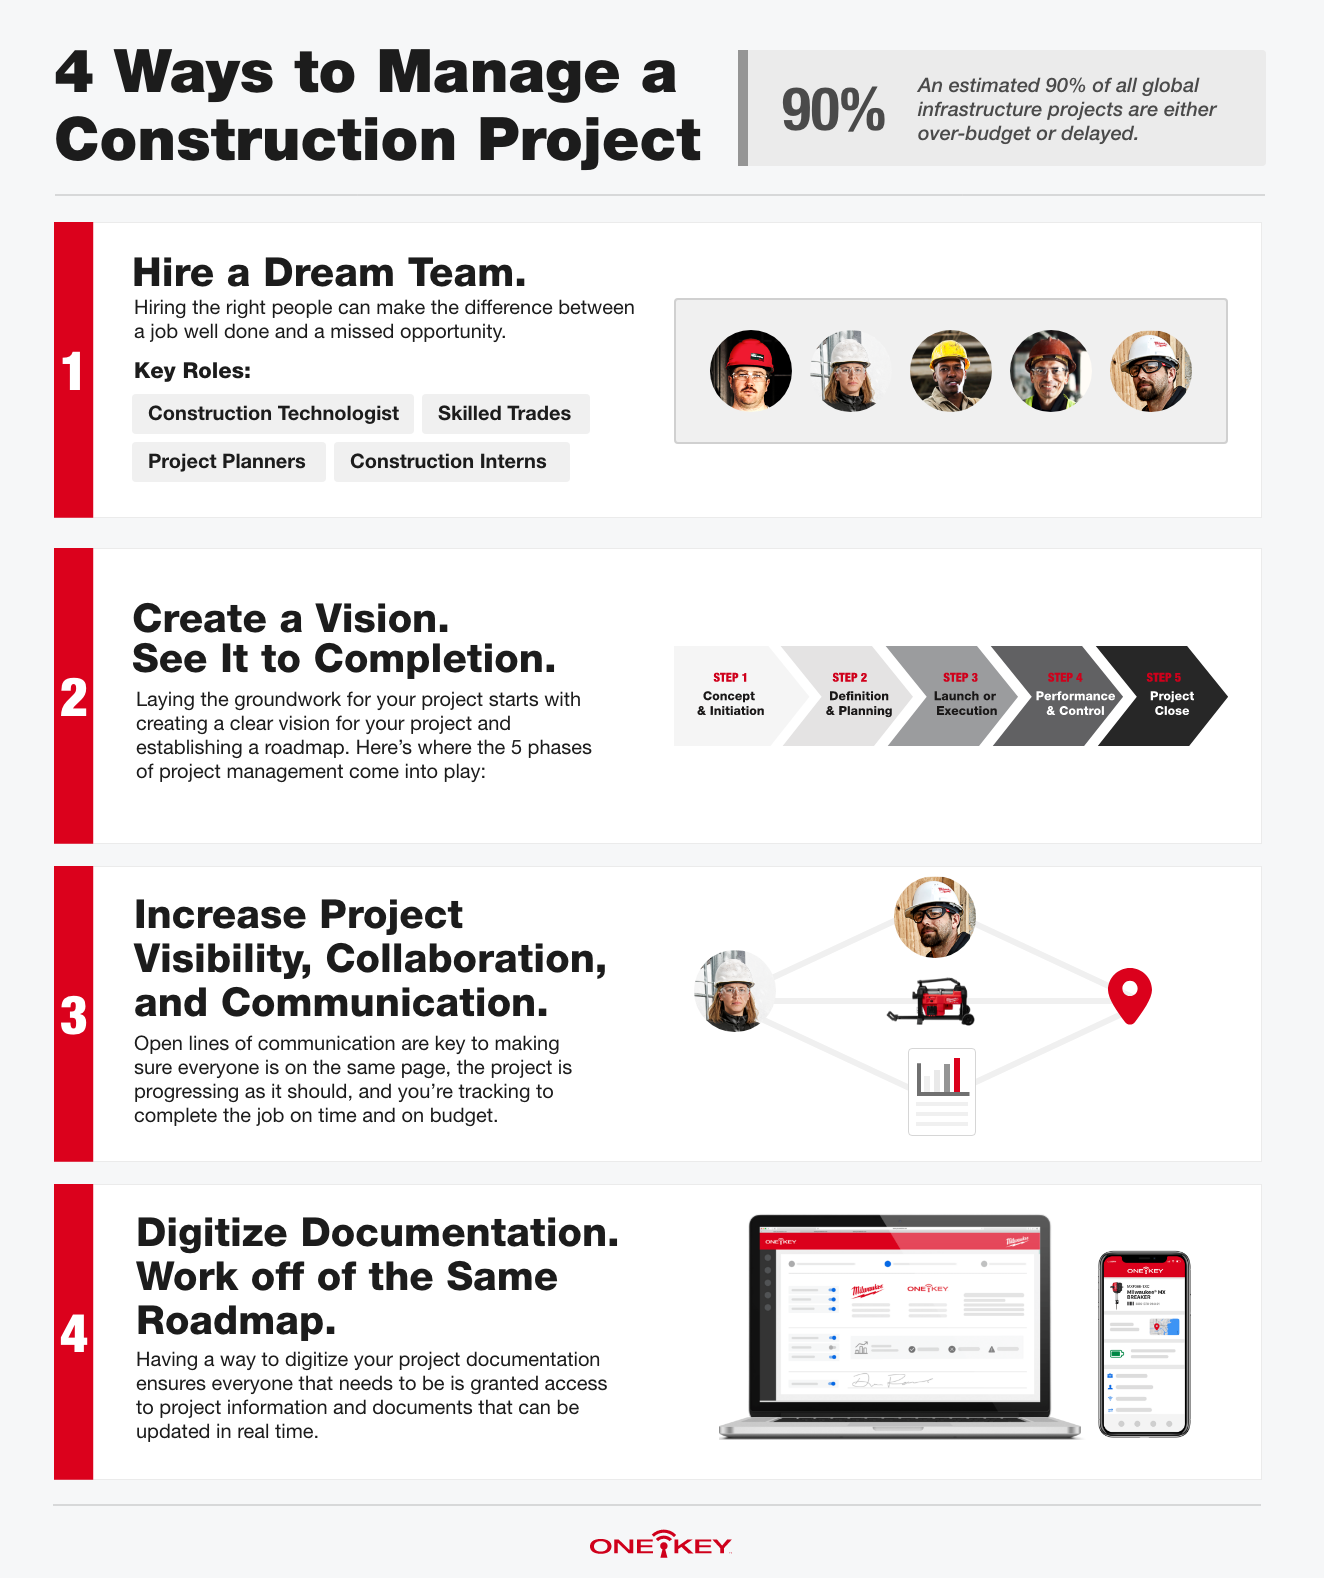 An infographic depicts 4 ways to project manage a construction project